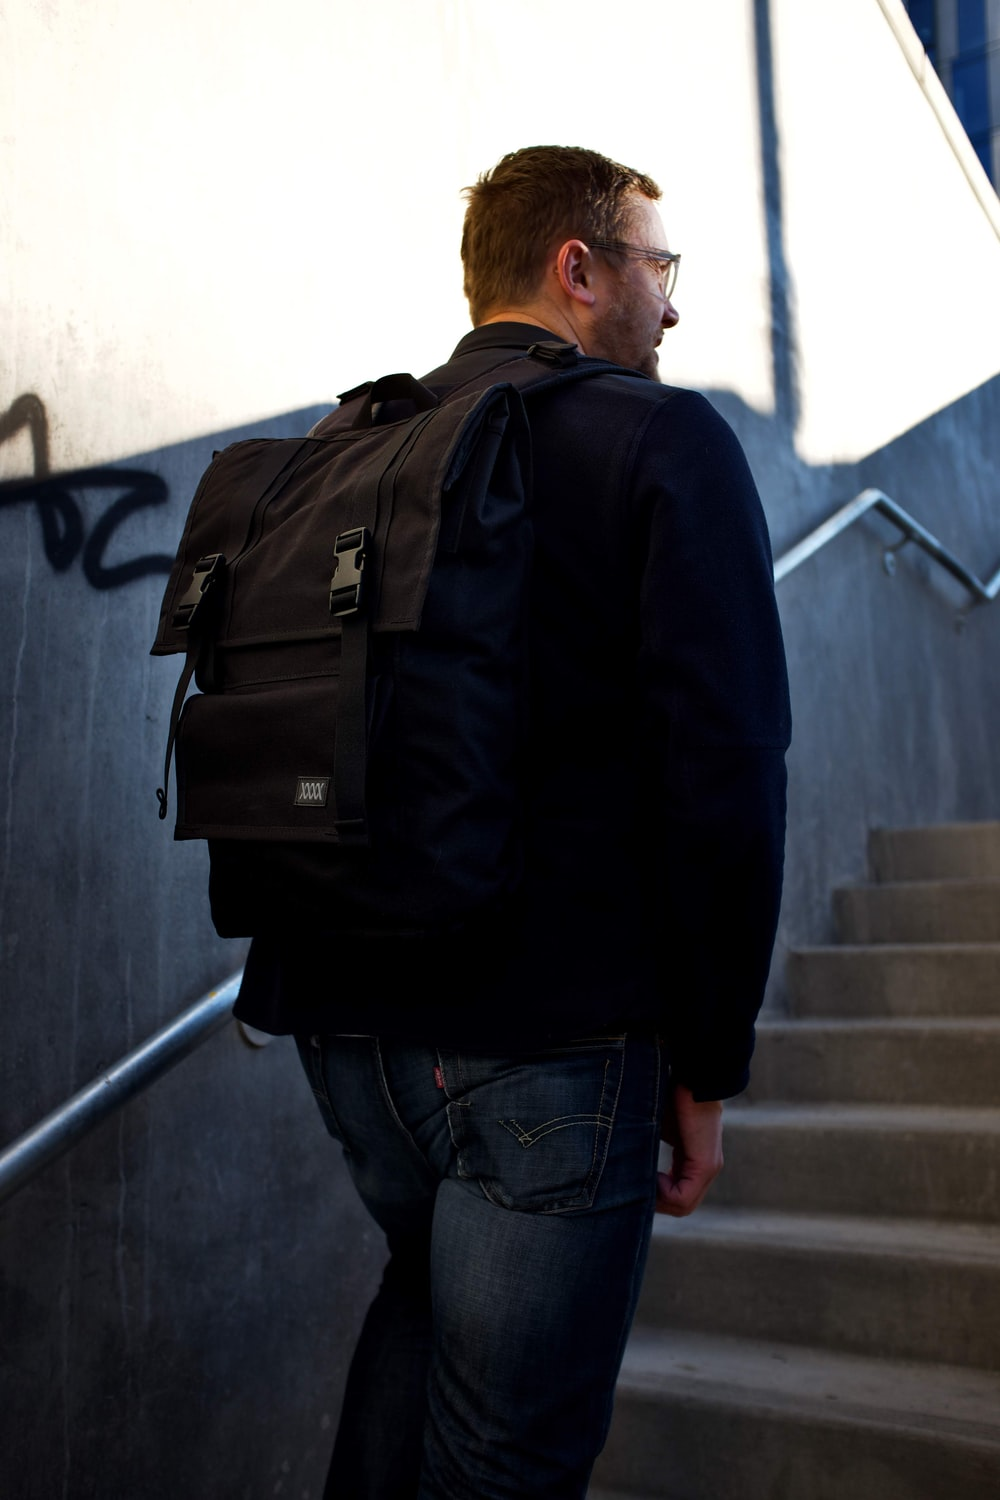 man in black jacket and blue denim jeans with black backpack standing on stairs